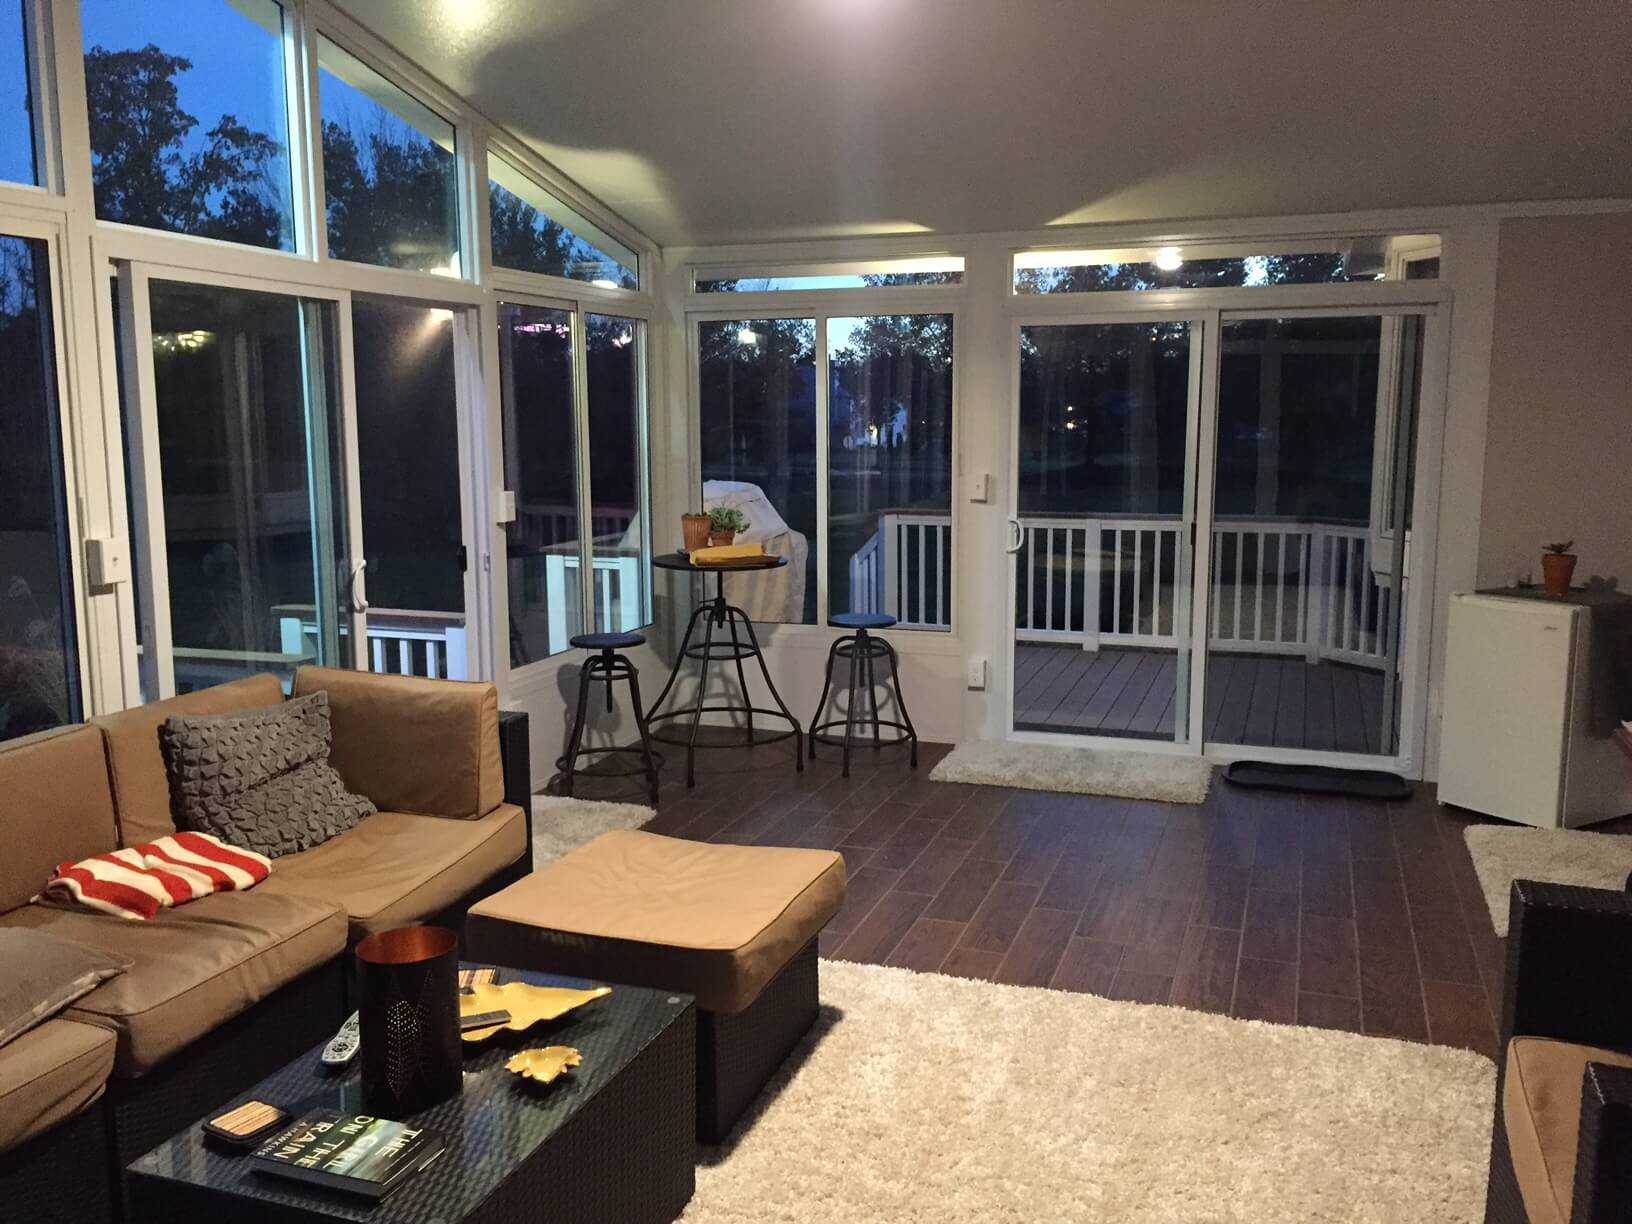 Sunroom by Roofing Renovations of Franklin Tennessee add livable space to your house.